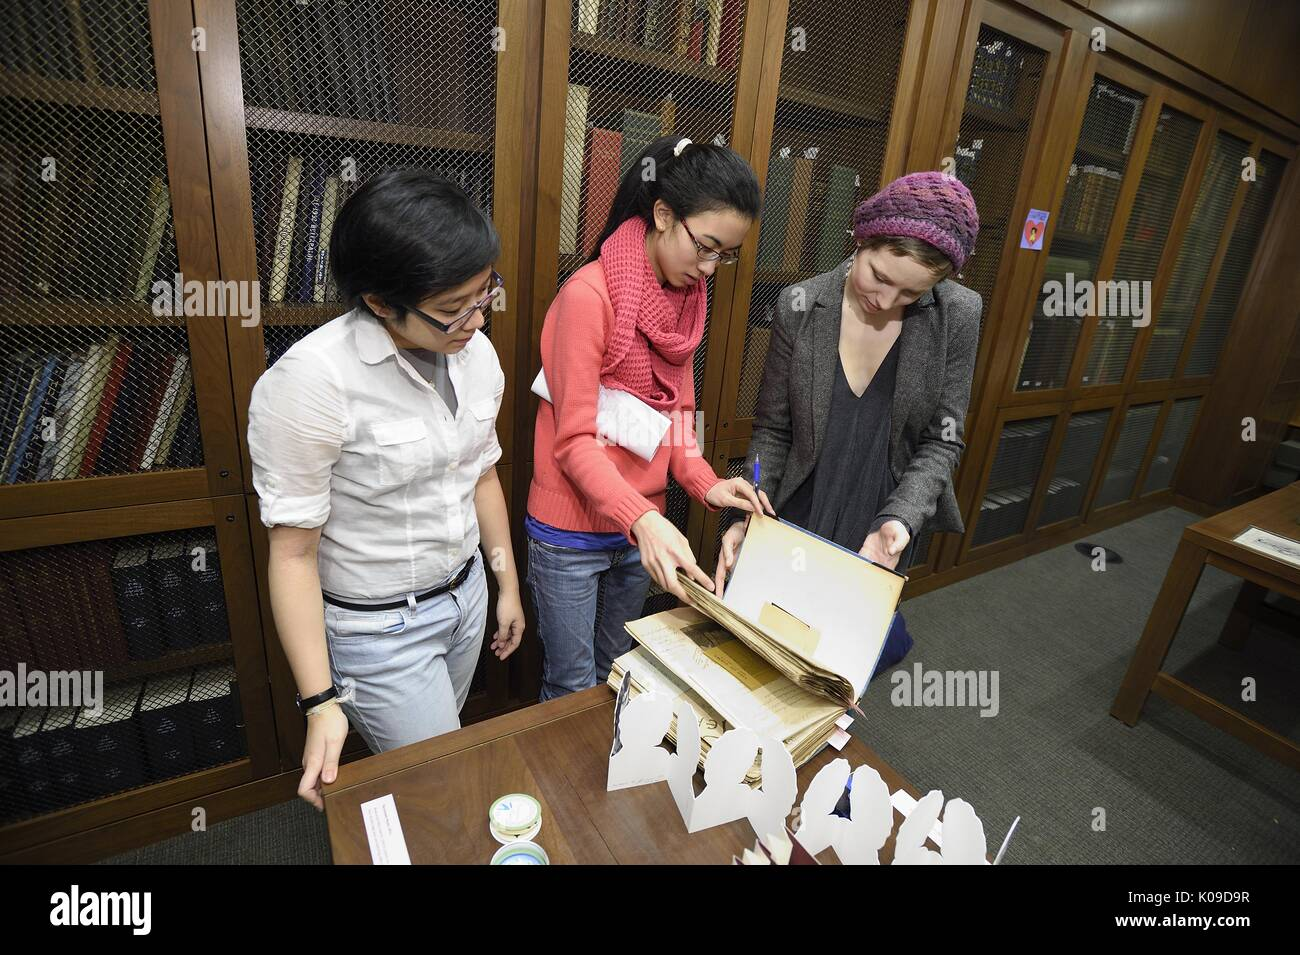 Three female college students are beginning to look through a binder at the library event called Dirty Books and Longing Looks, February 11, 2016. - Stock Image